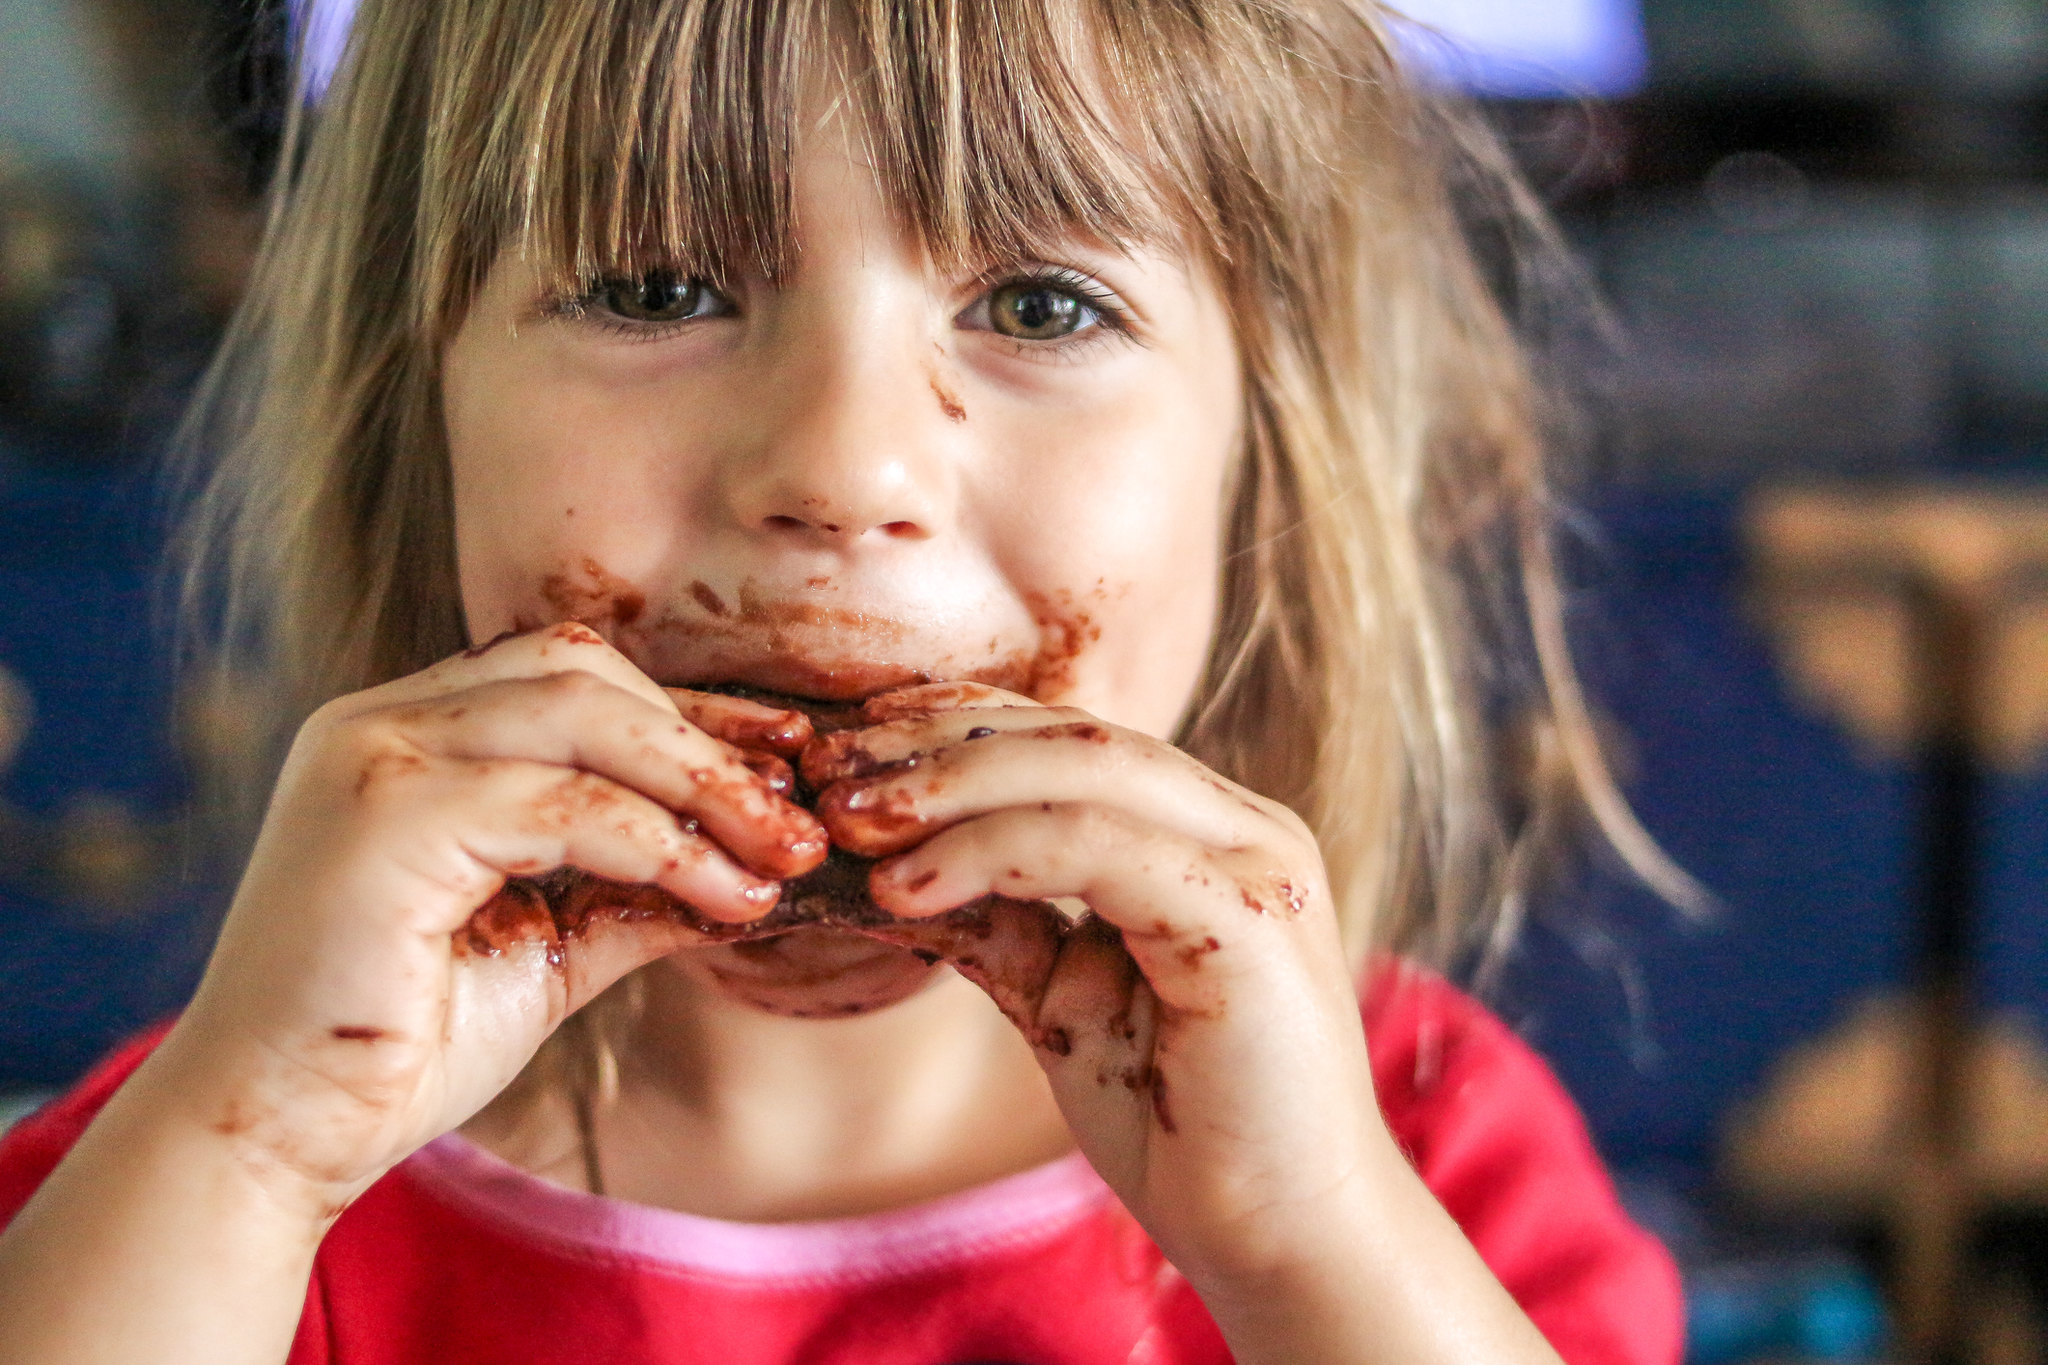 girl with chocolate around her mouth